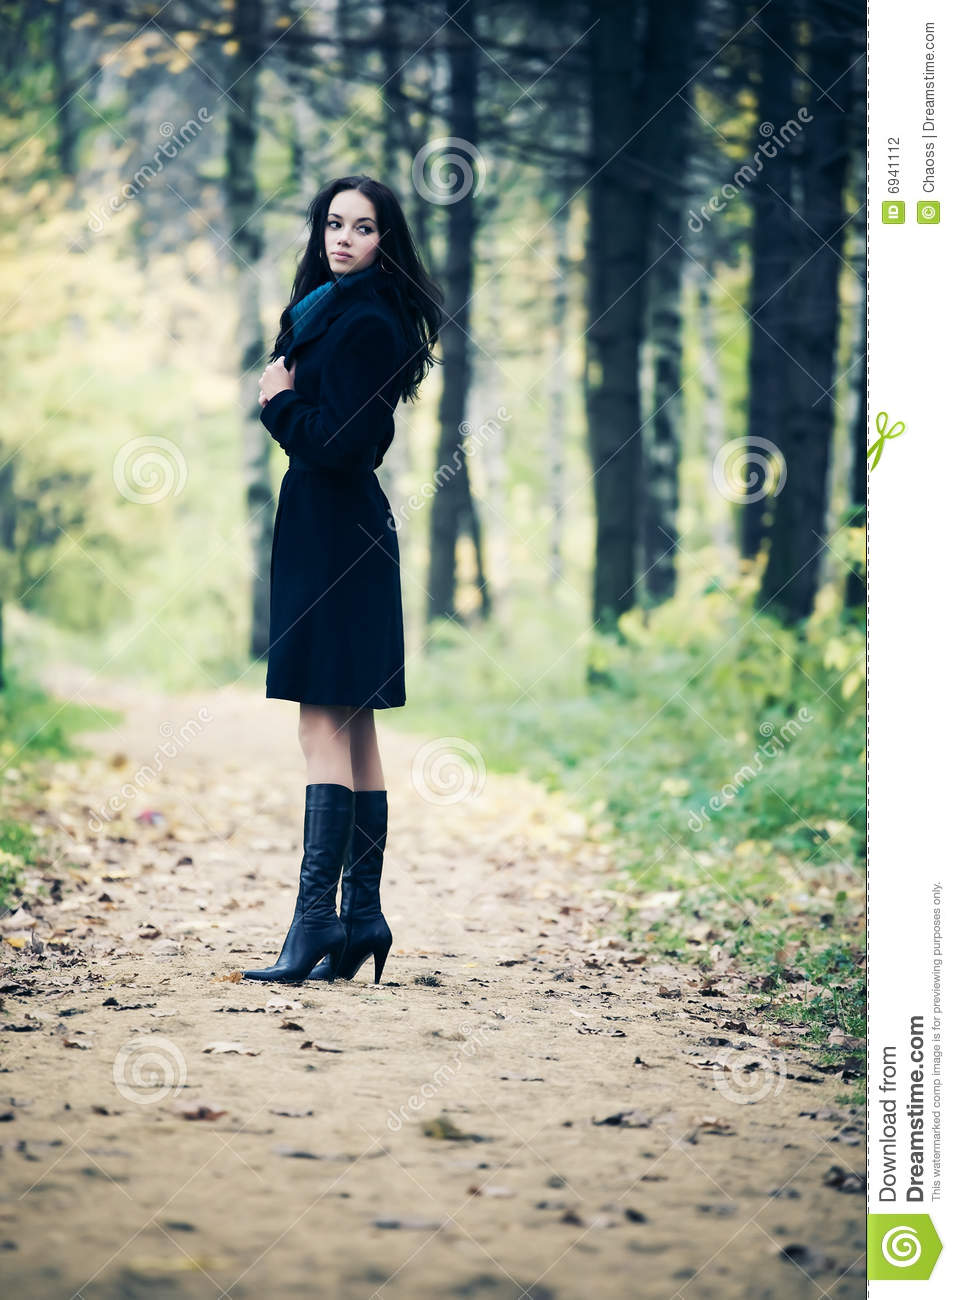 Slim Brunette Woman Walking In A Park Stock Photography - Image 6941112-5025